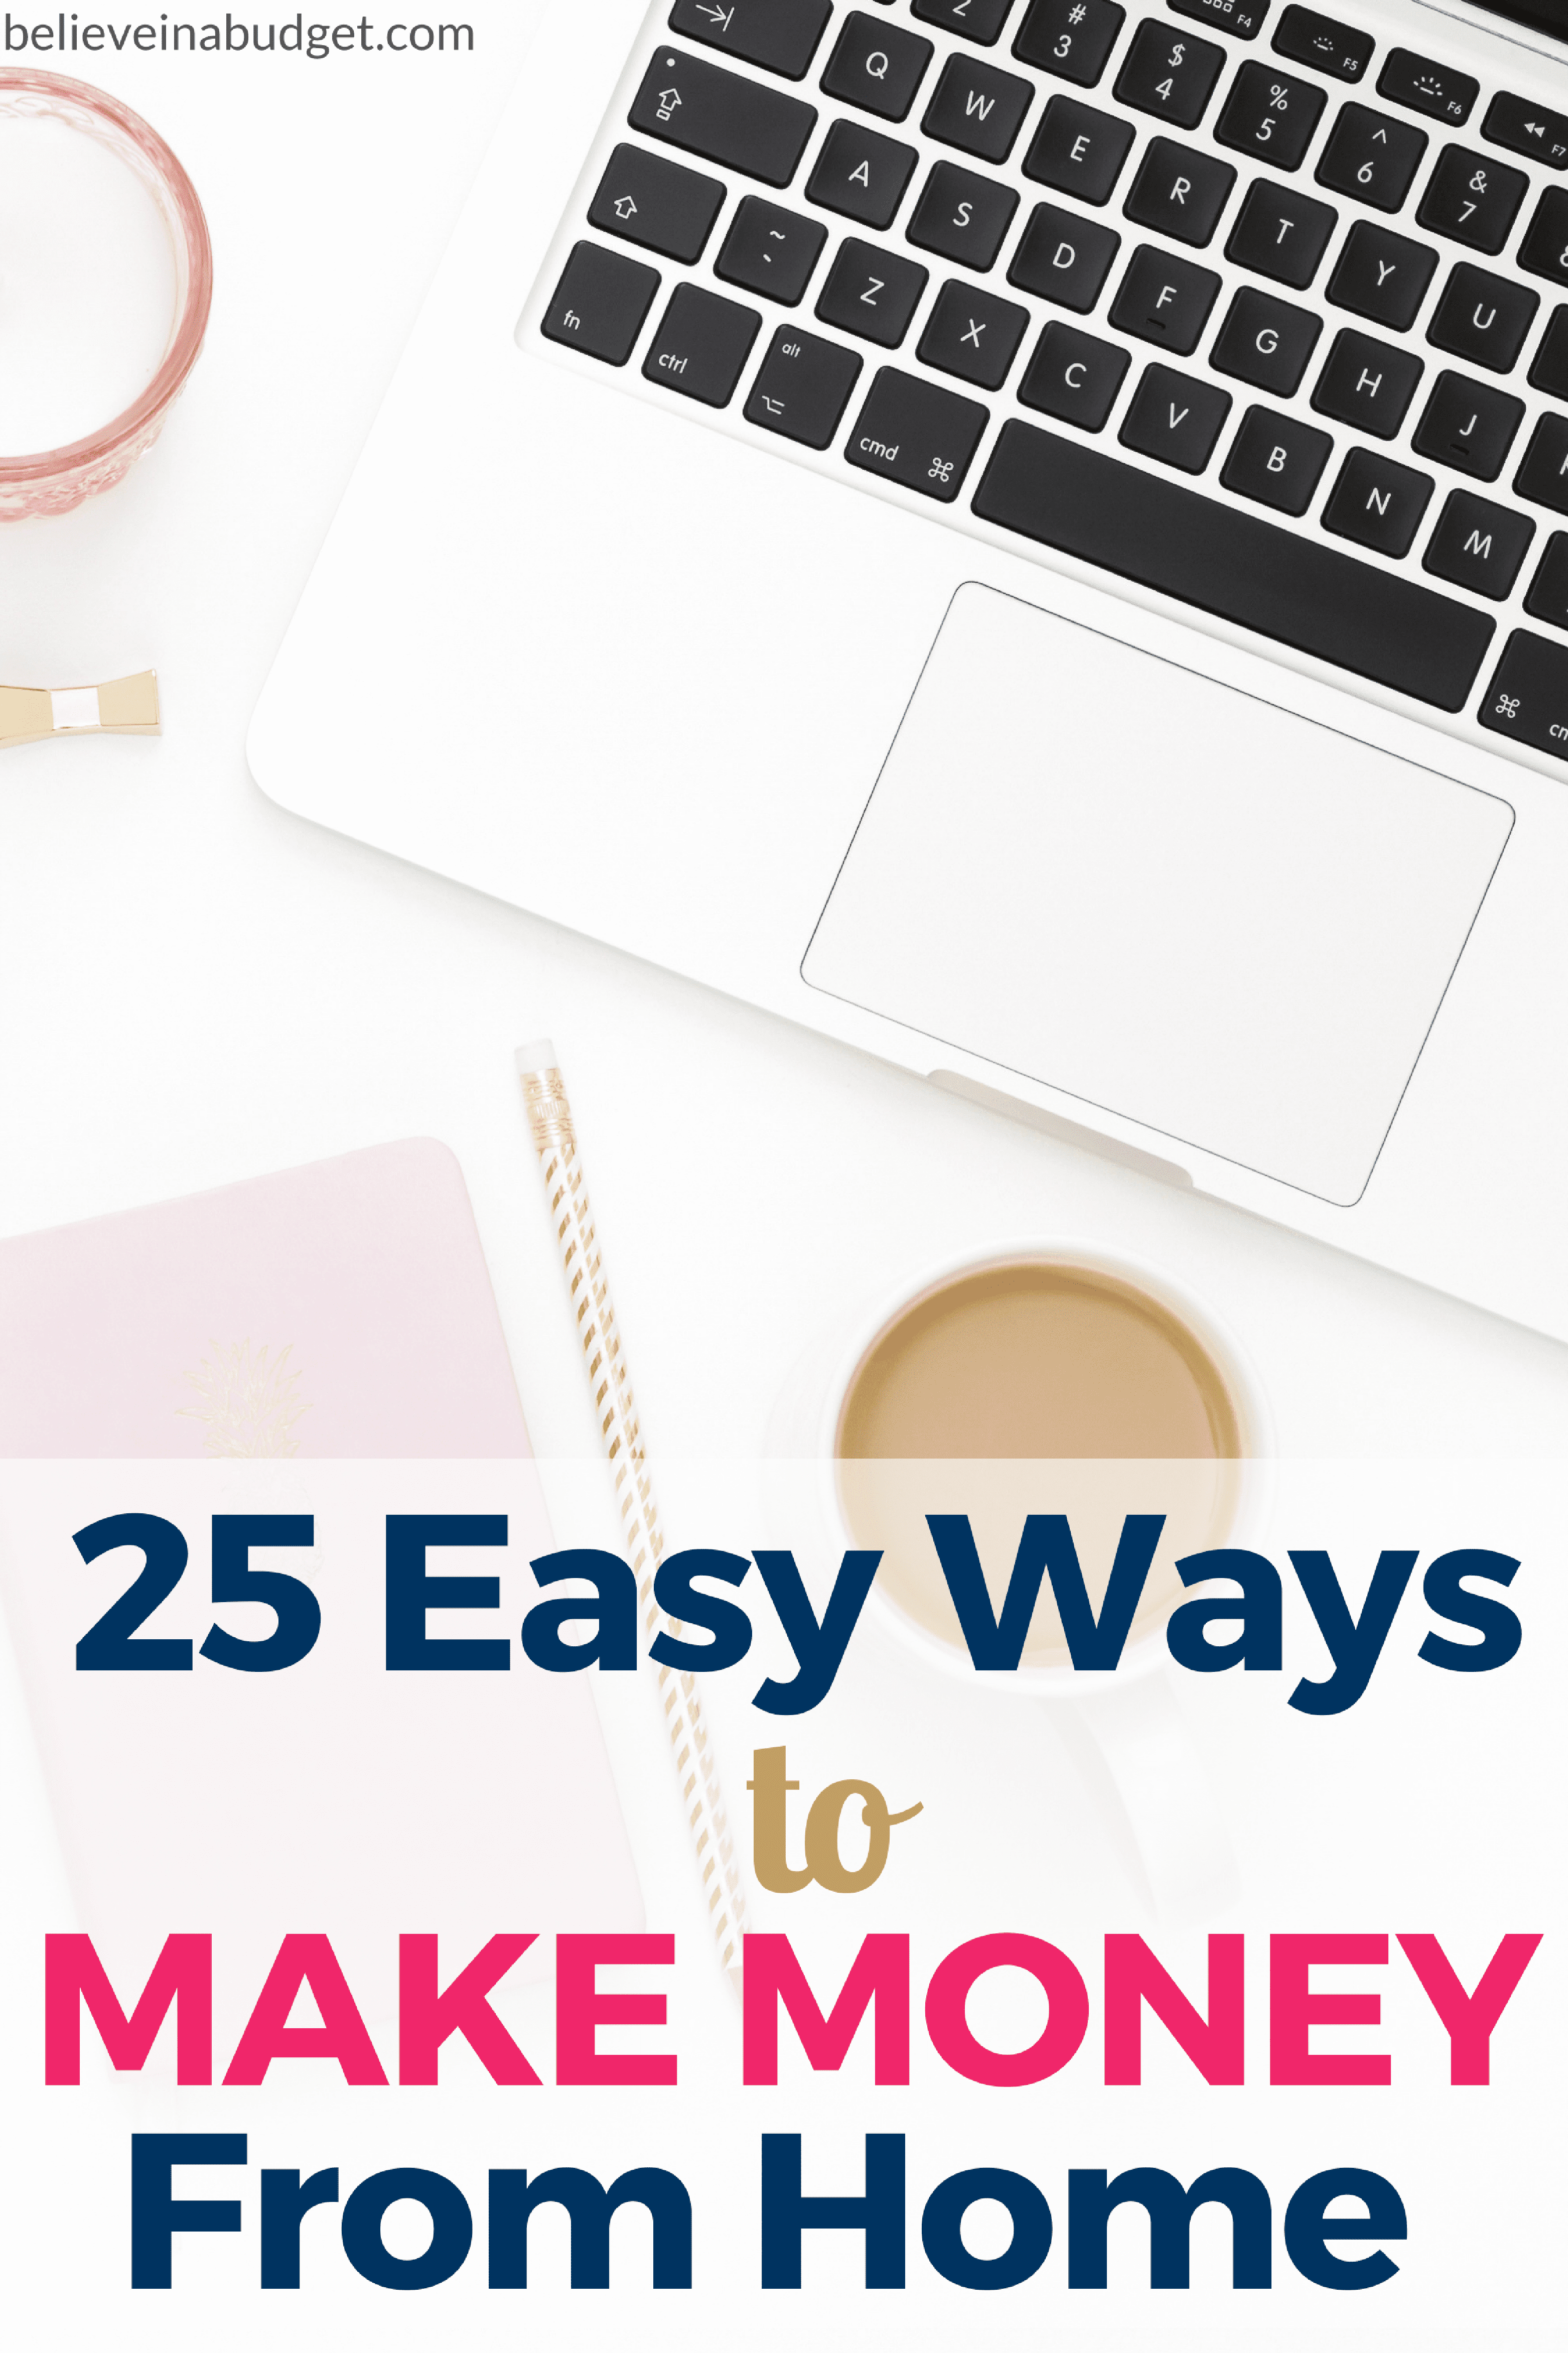 If you want to side hustle to make extra money, here are 25 easy ways to make money from home. As long as you have a computer and internet, you can start a side hustle today. I have tried most of these side hustles and made THOUSANDS of dollars over the past few years.